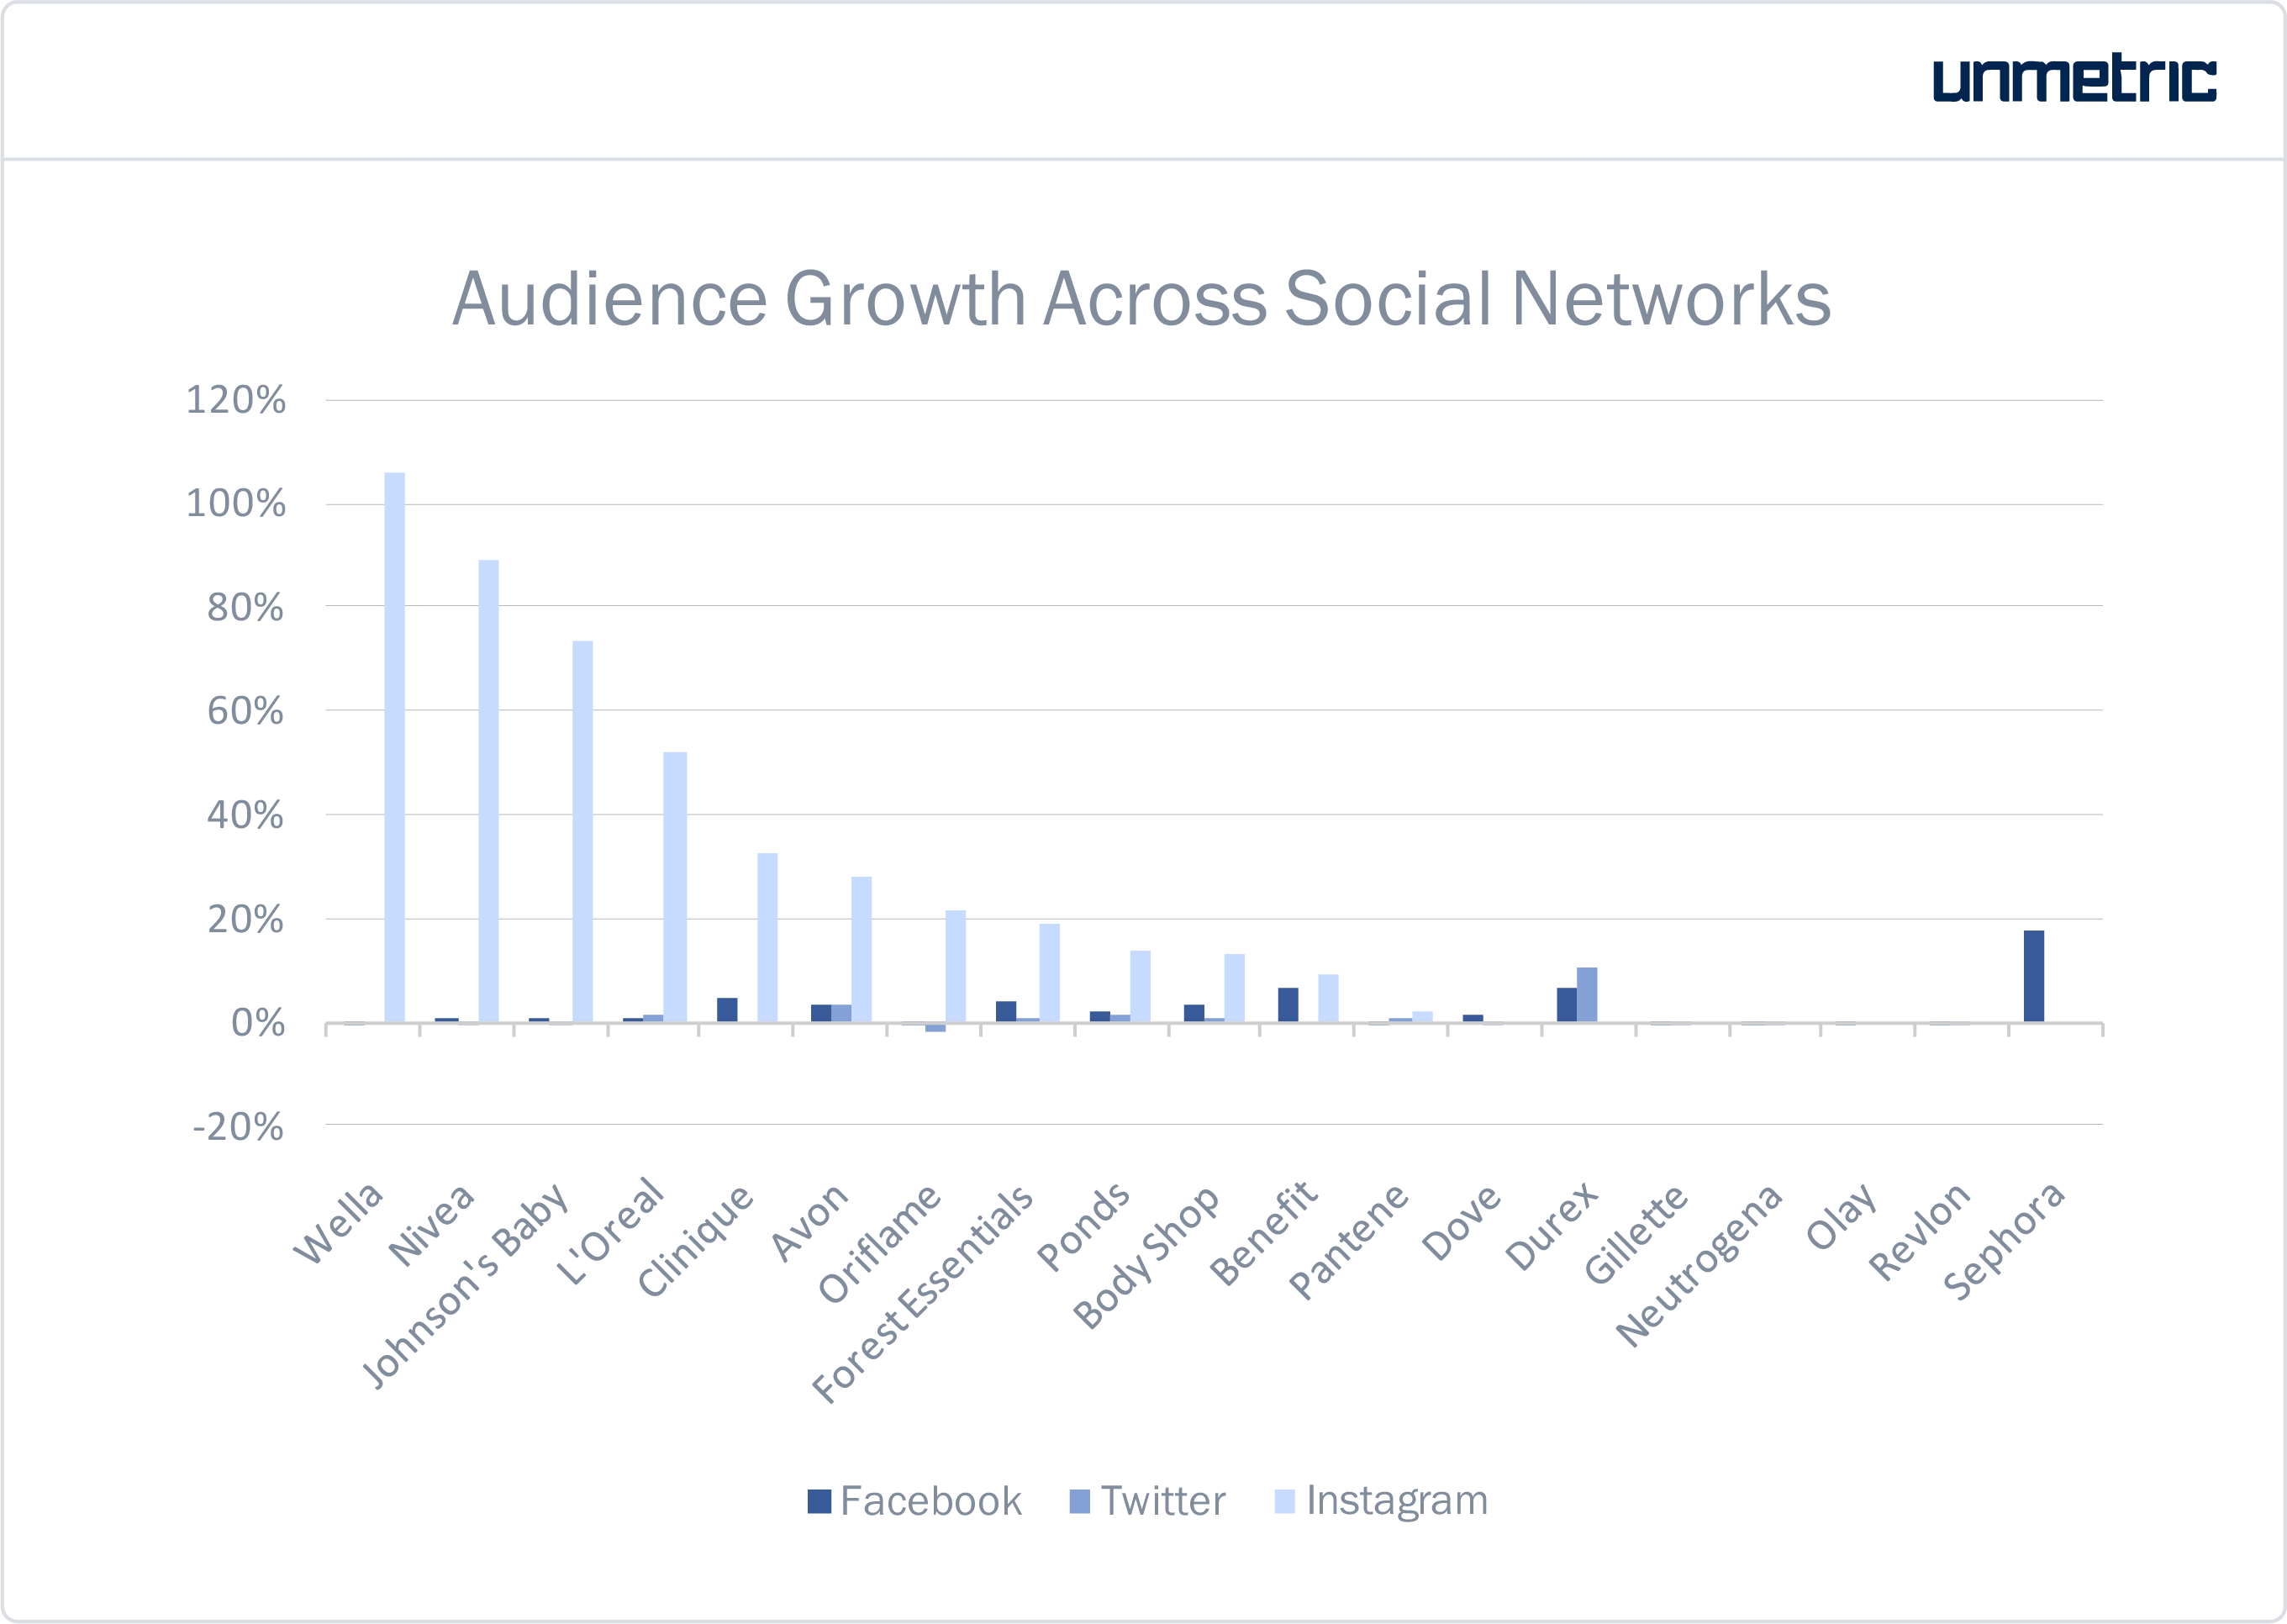 personal care brands in india social media growth